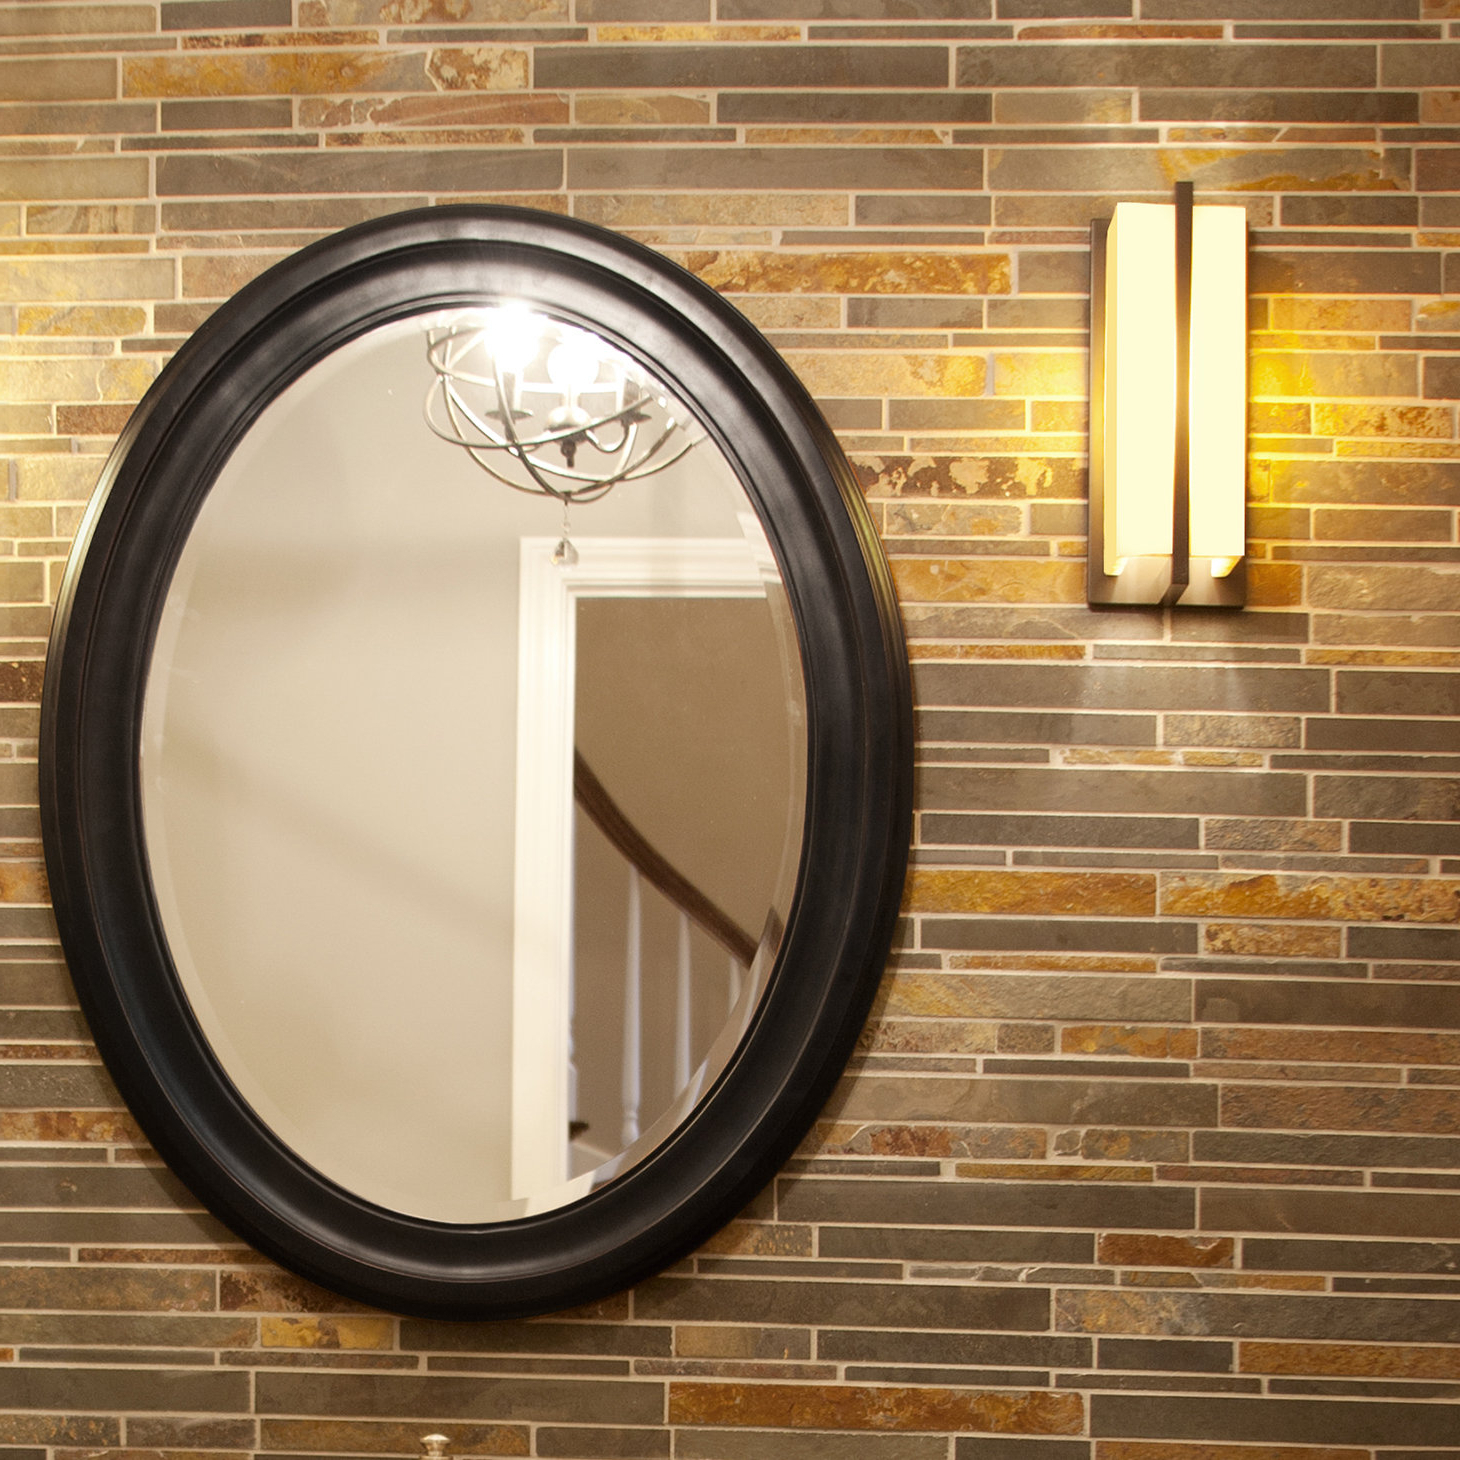 Fashionable Burnes Oval Traditional Wall Mirrors Intended For Pfister Oval Wood Wall Mirror (View 14 of 20)